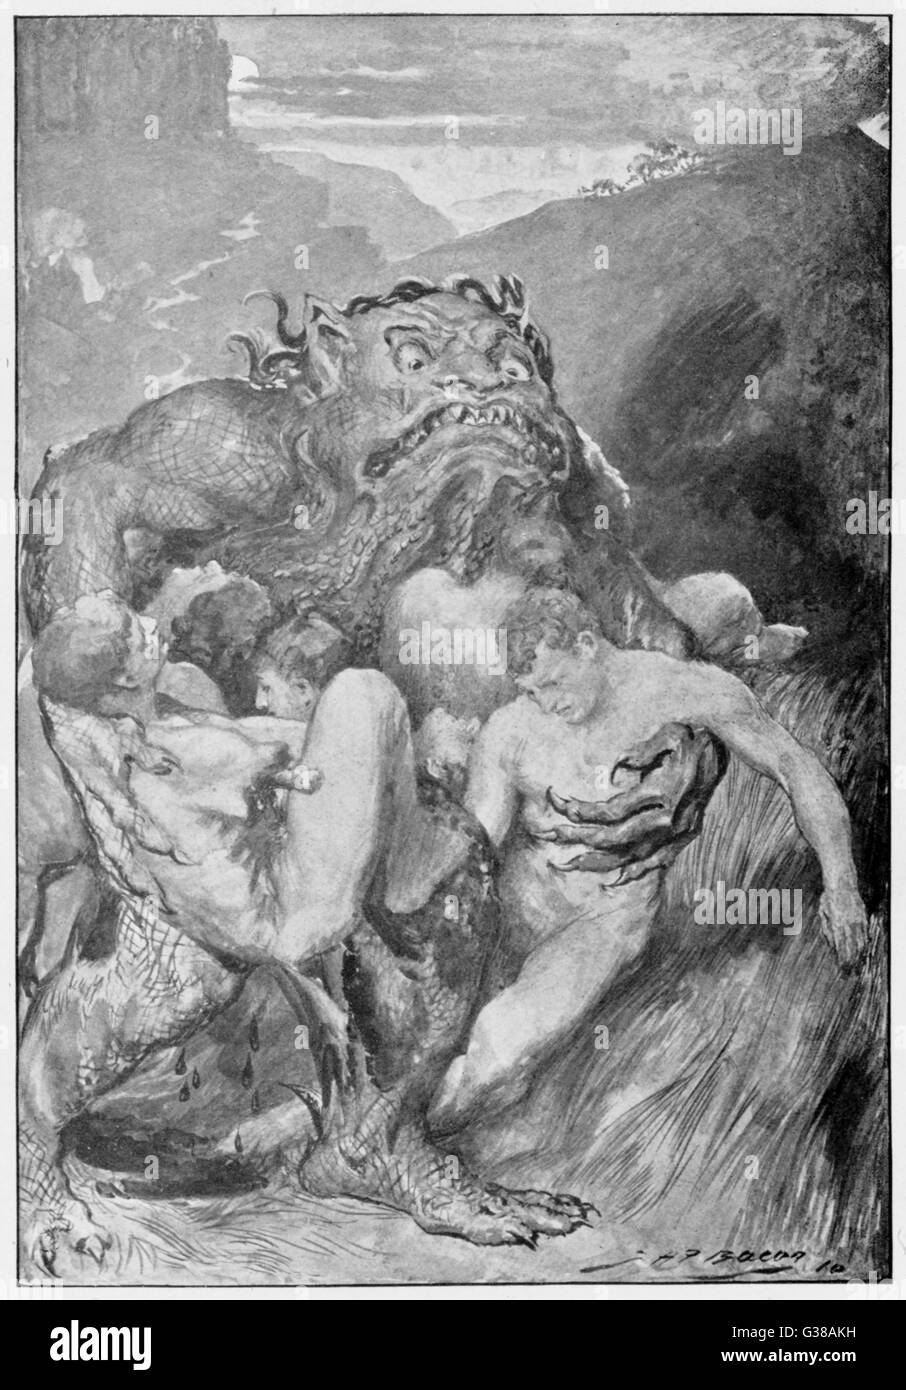 A scaly monster abducts  several unfortunate young men  with intent to devour them.  (Grendel the monster from the - Stock Image